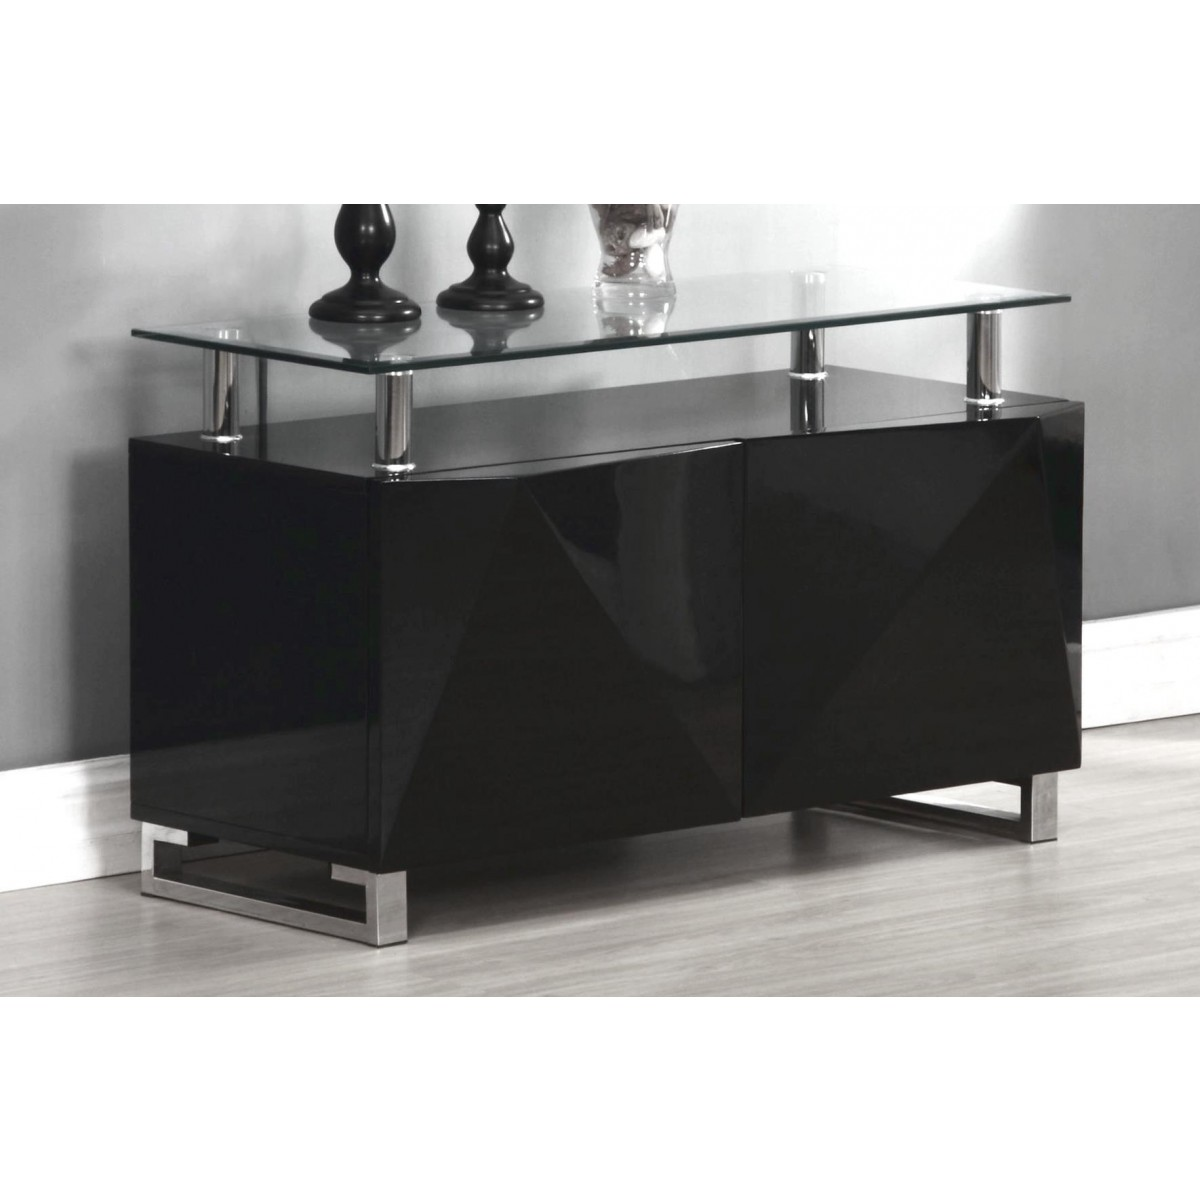 Sideboard Modern Modern Home - Regis Black High Gloss Sideboard 2 Doors - Free Next Day Delivery